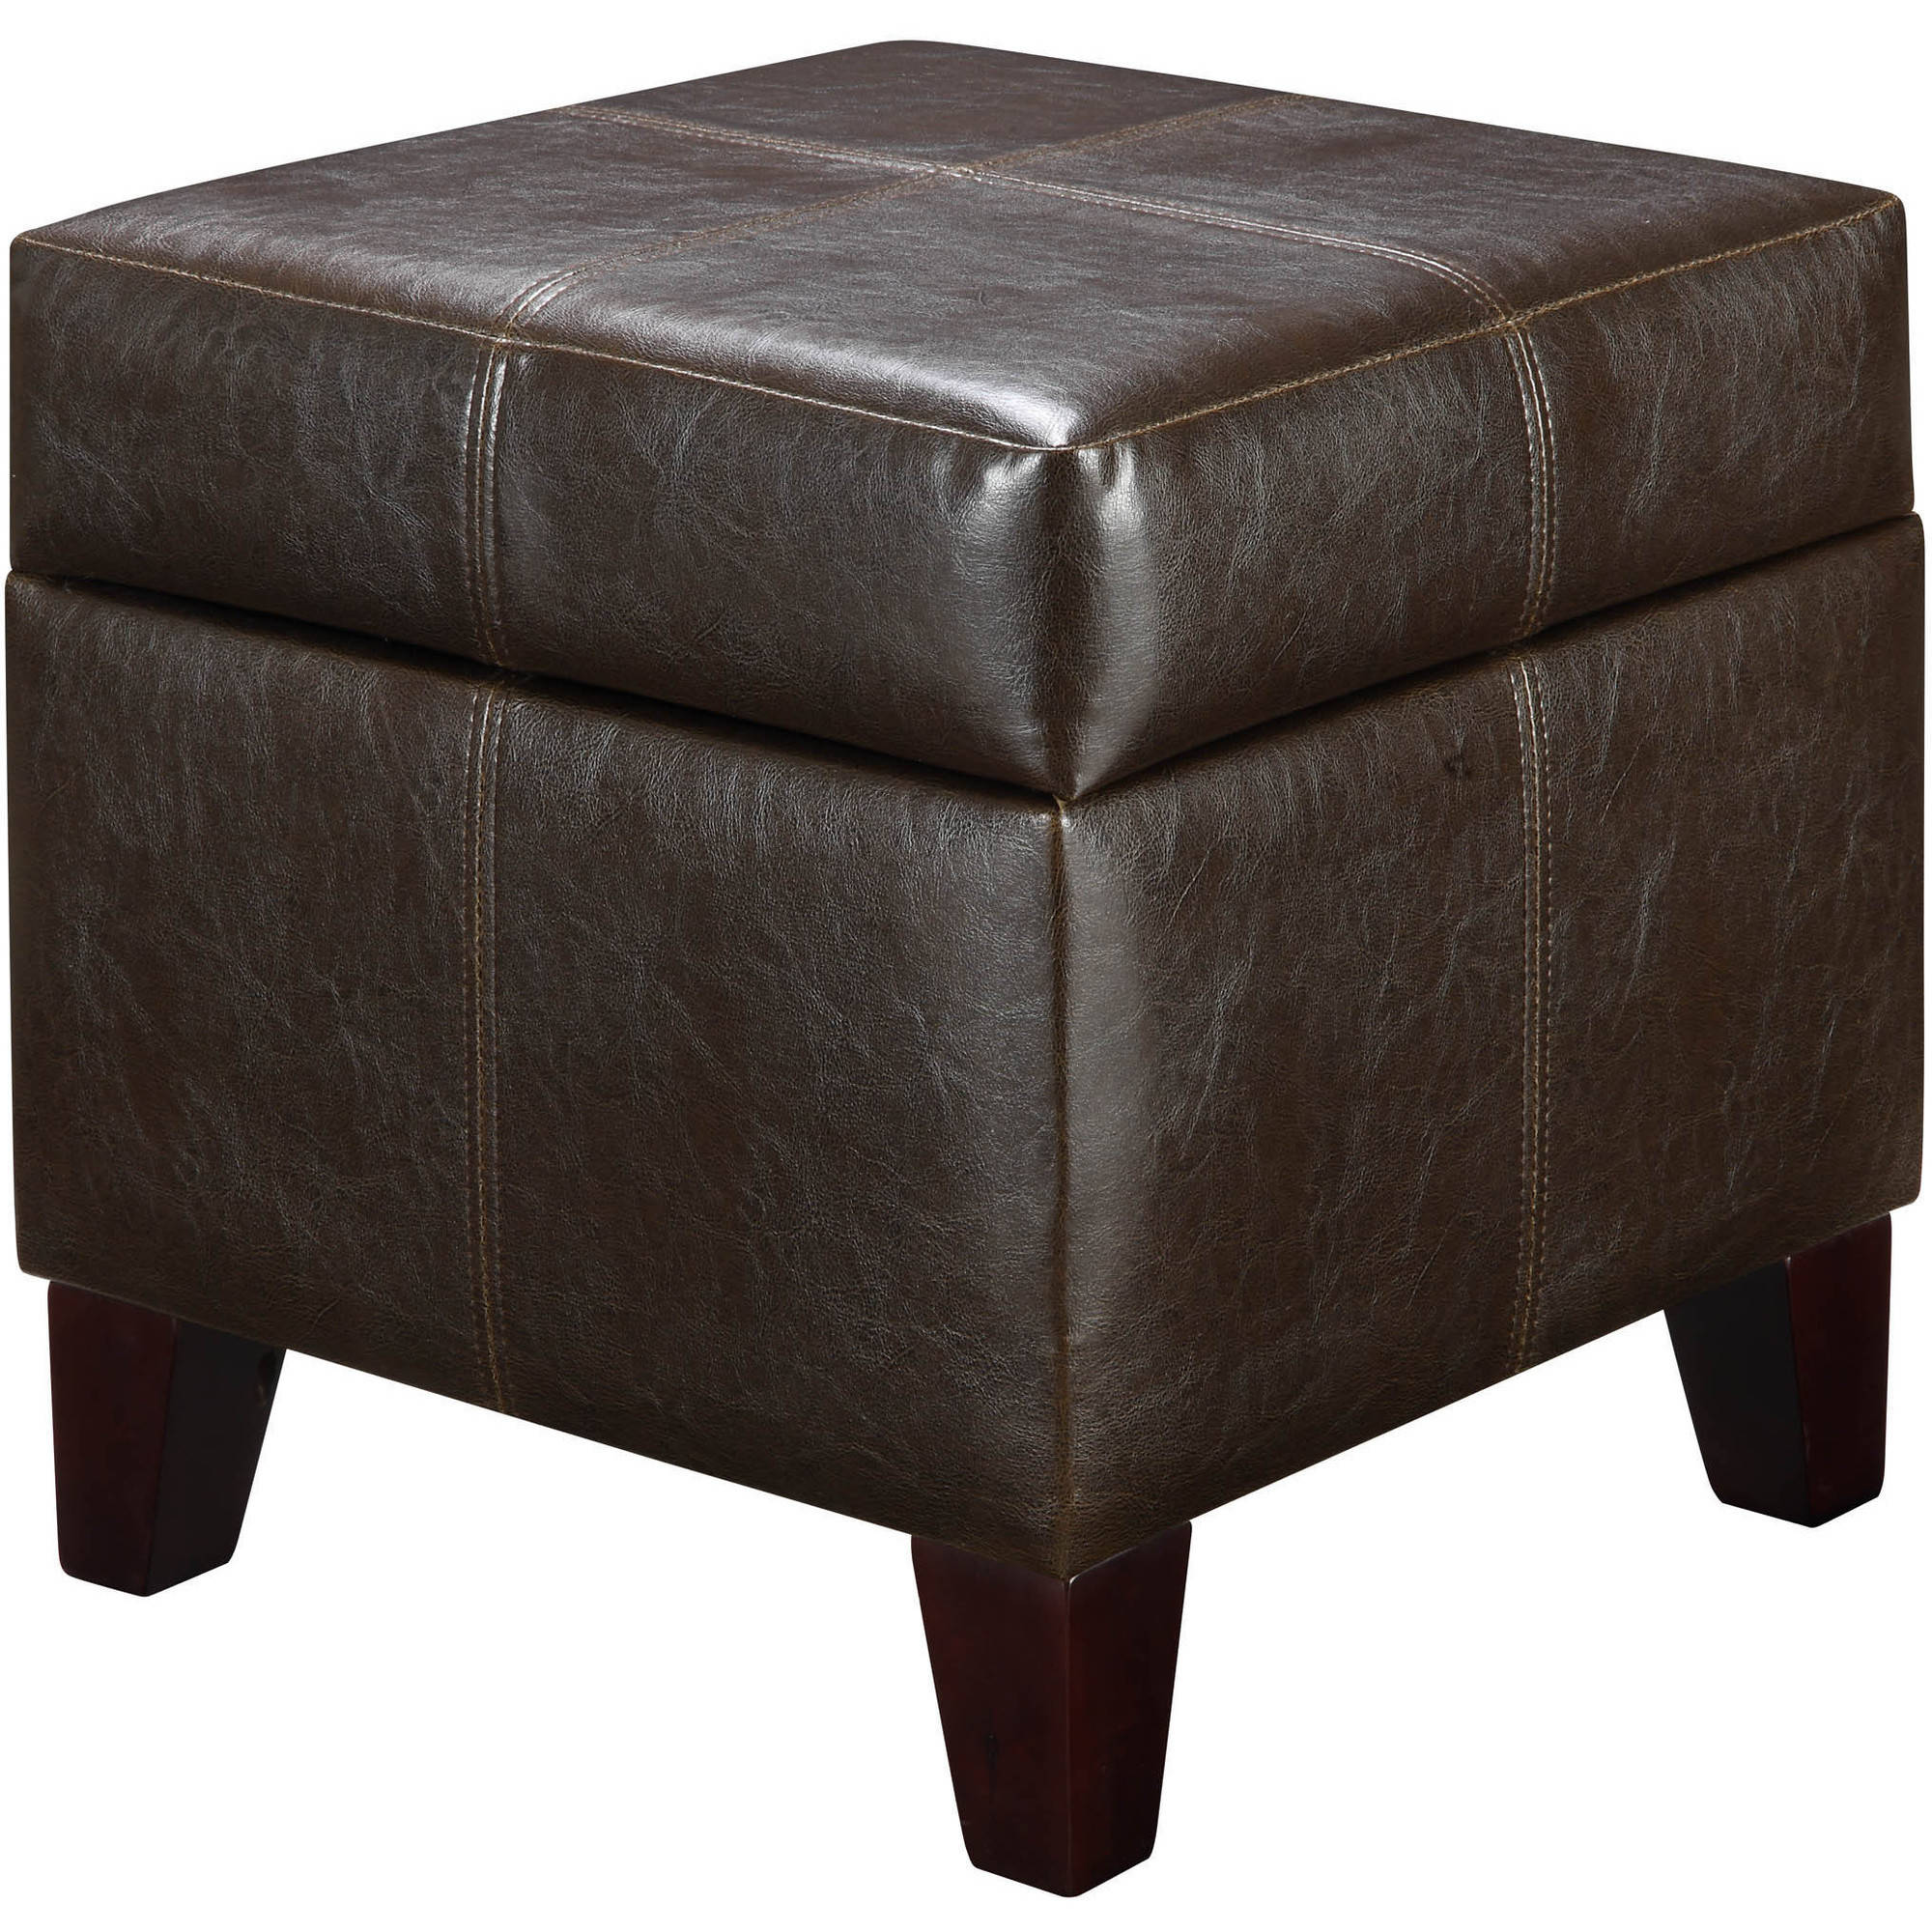 Dorel Living Small Storage Ottoman, Multiple Colors